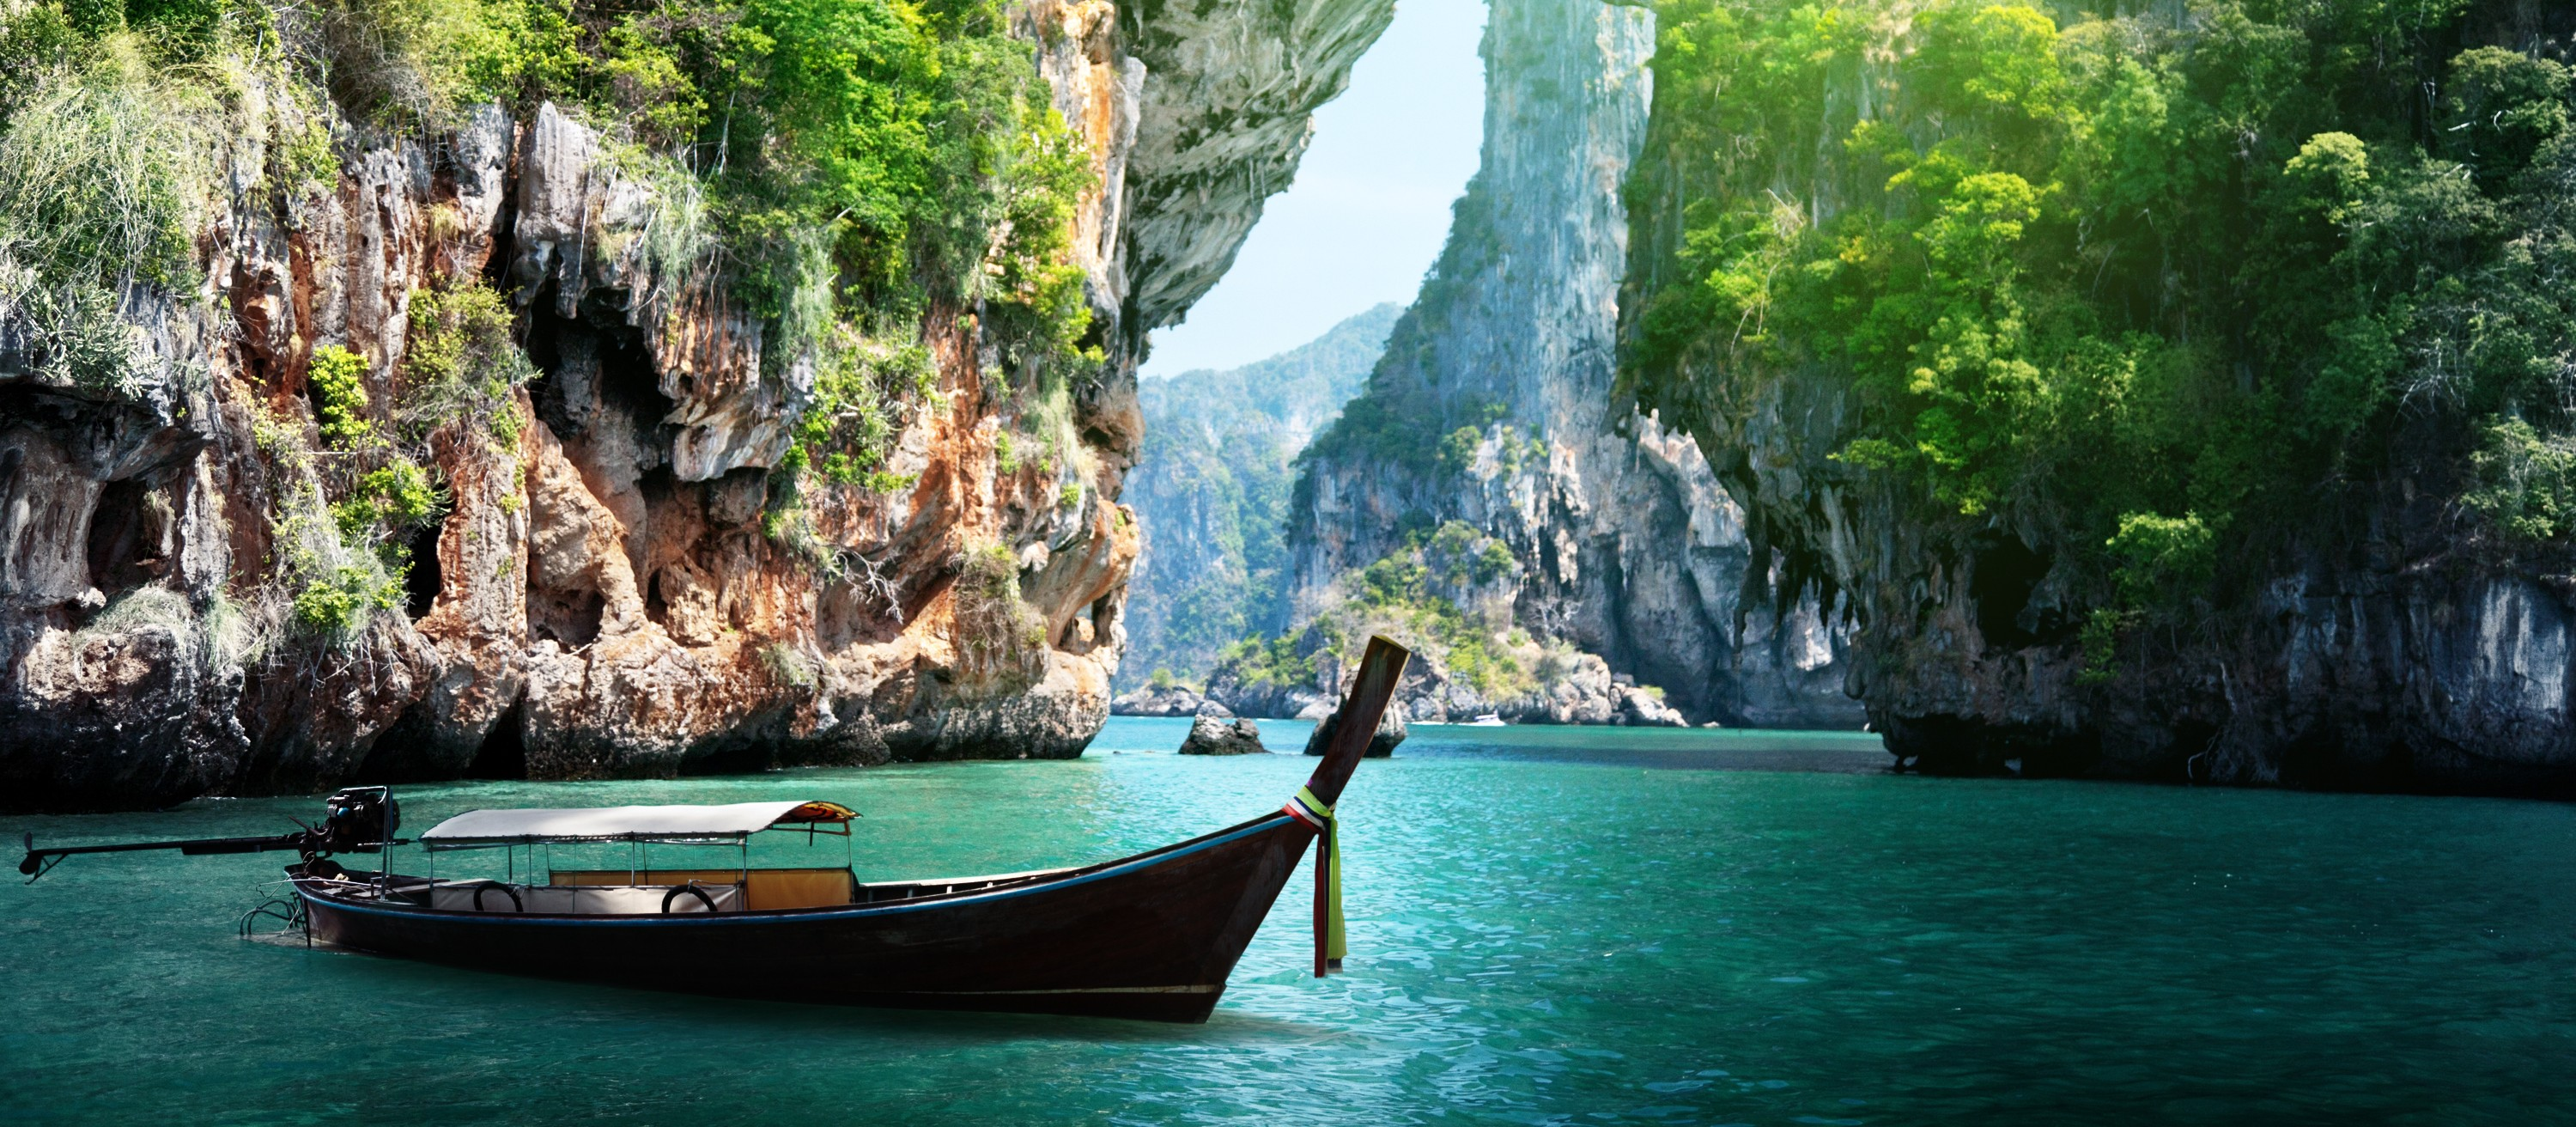 honeymoon locations indians thailand